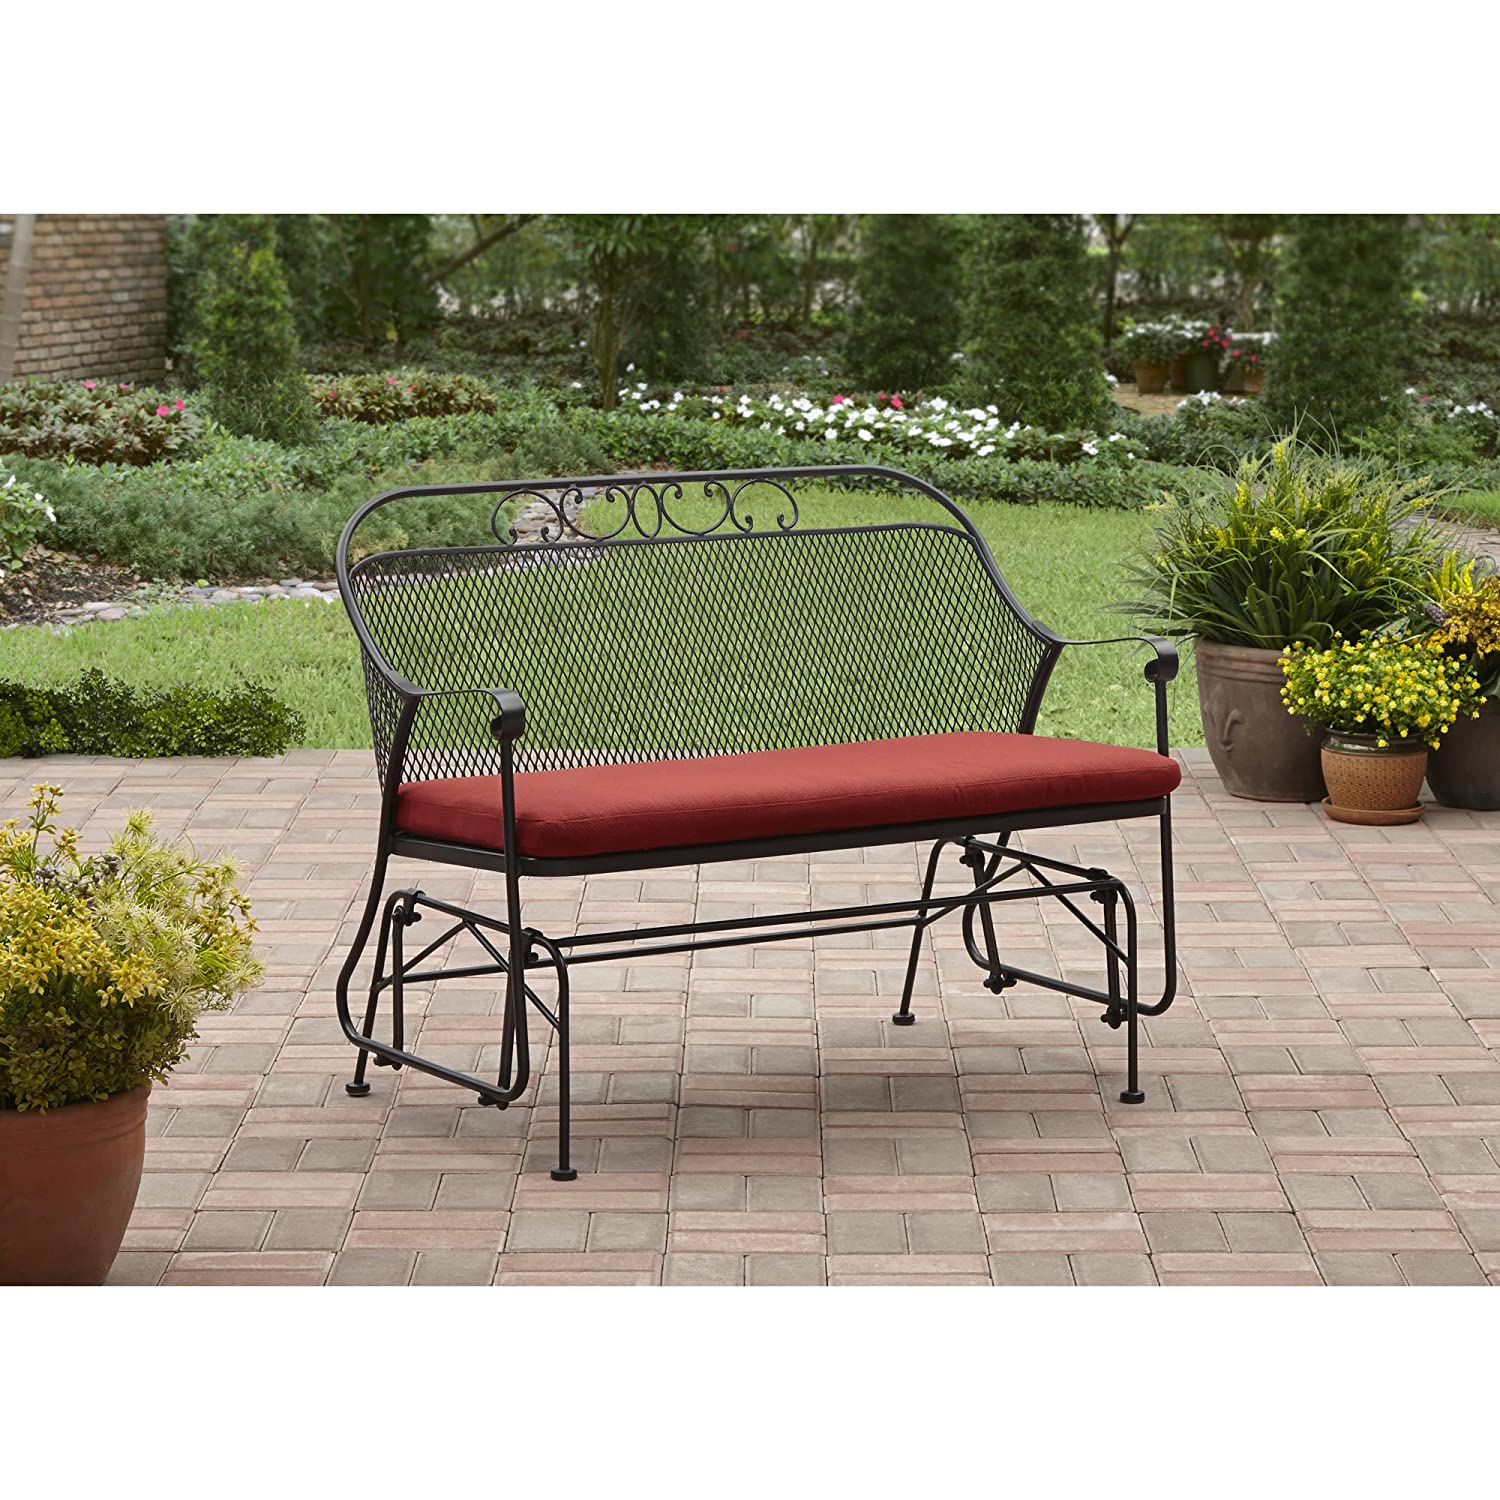 Care 4 home llc patio garden metal glider padded seat bench durable frame seat up to two people uv water resistant perfect for garden porch yard